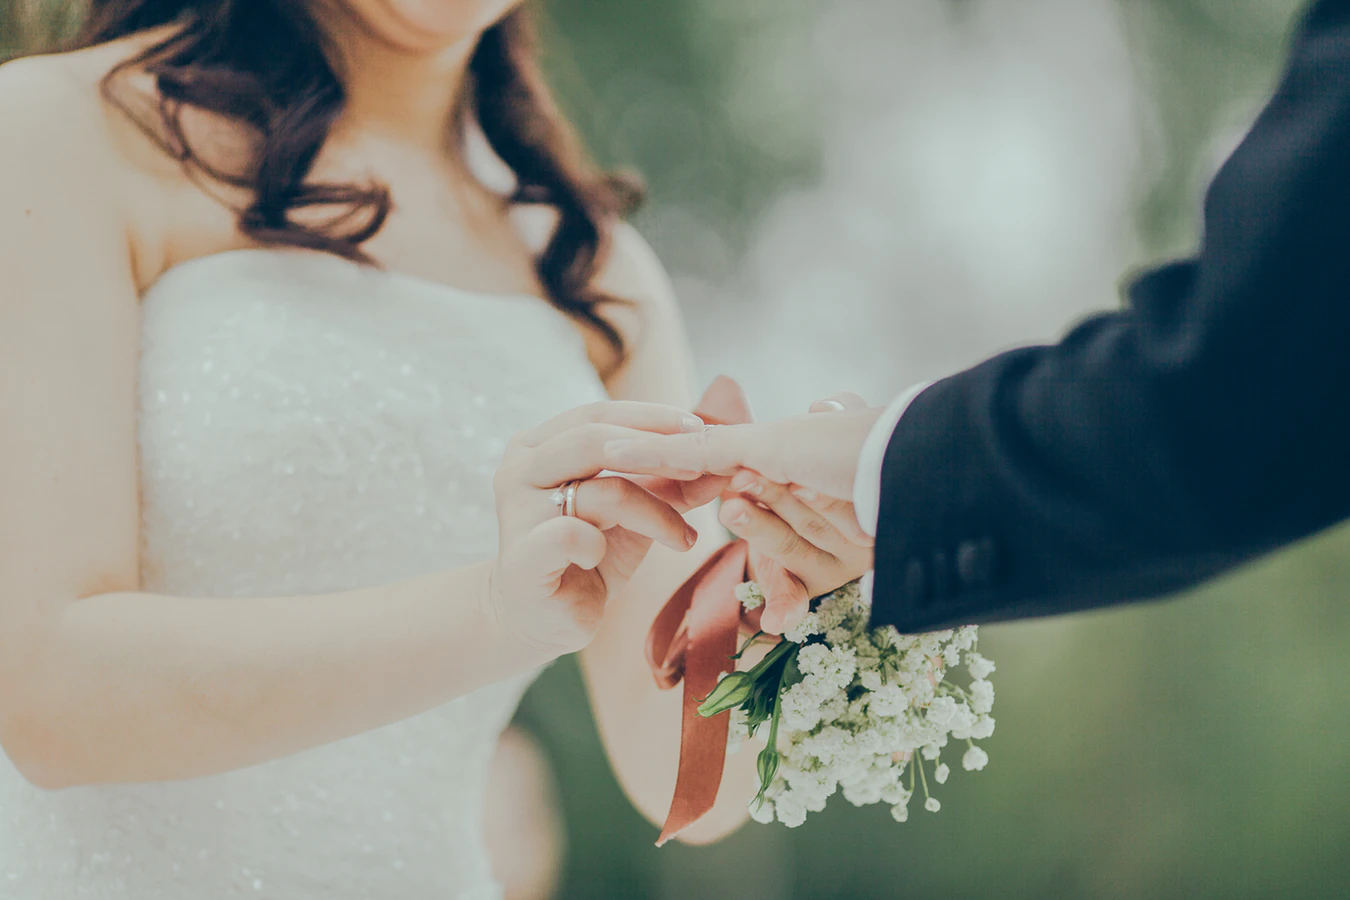 A bride puts a ring on a groom's finger